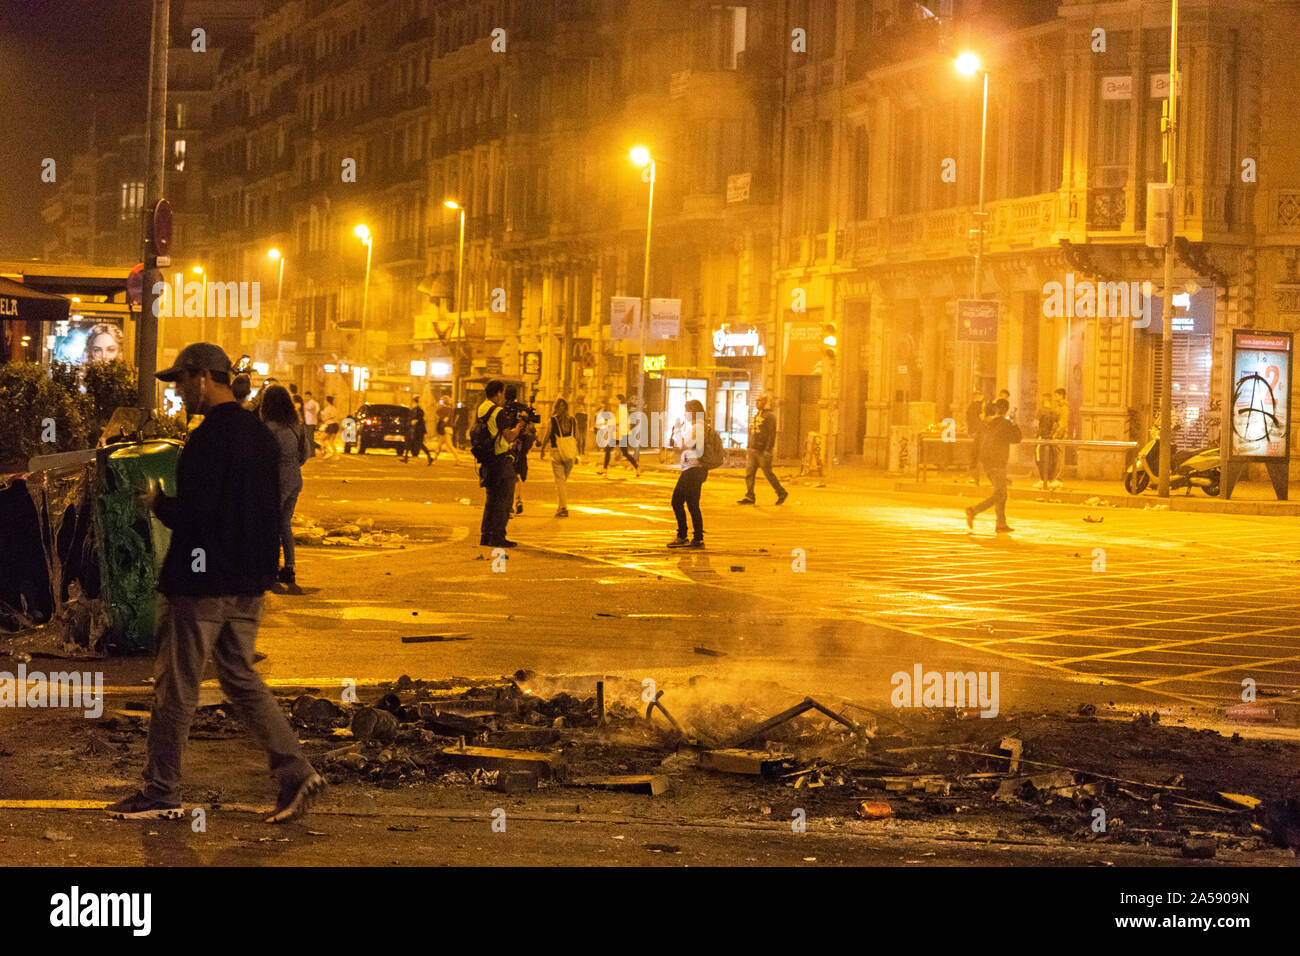 Barcelona, Spain - October 18, 2019:  Smoke and barricades on the main square of Barcelona during the protest against the imprisonment of the Catalan leaders Credit: Dino Geromella/Alamy Live News Stock Photo